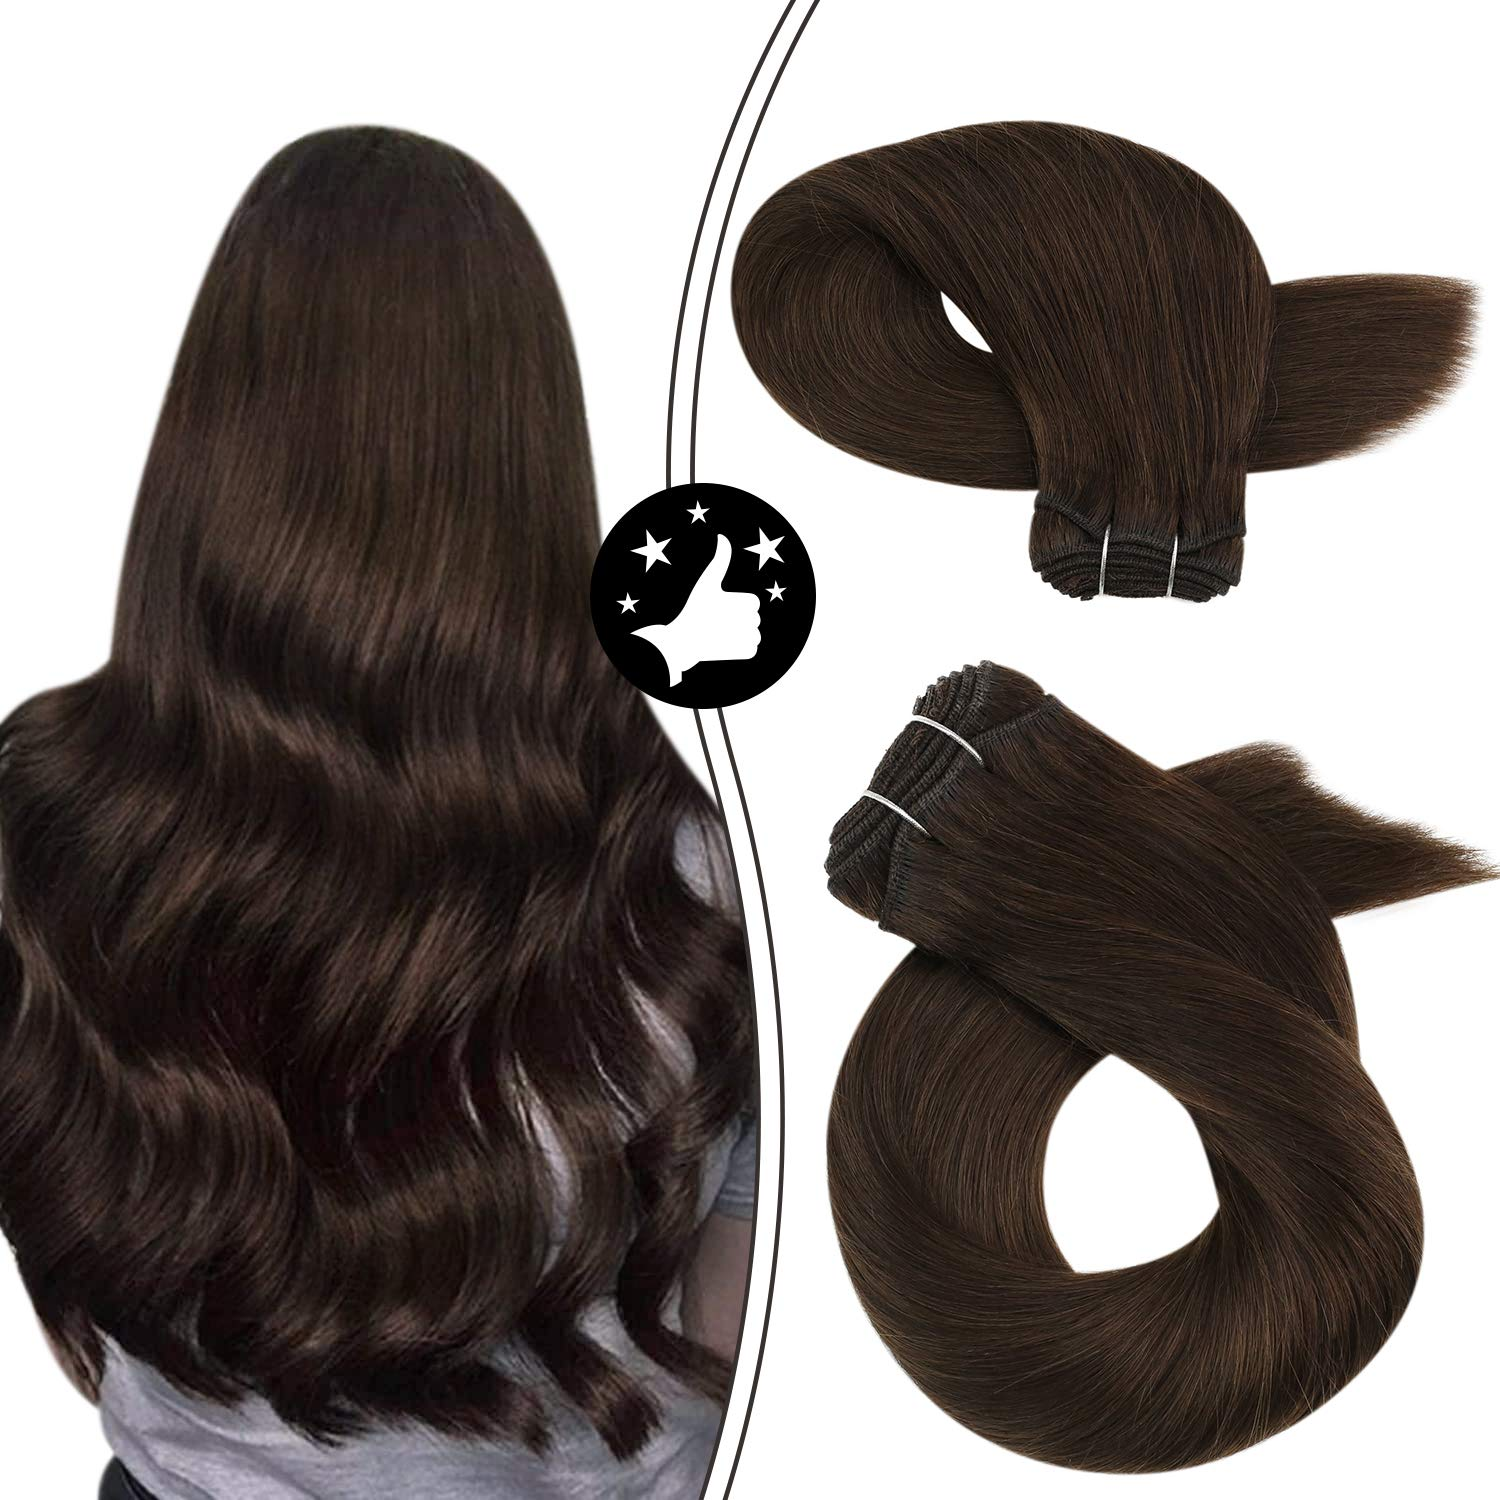 Sew in Extensions Human Hair 100G/Set Natural Straight Weft Colored #4 Dark Brown Machine Remy Brazilian Hair Bundles